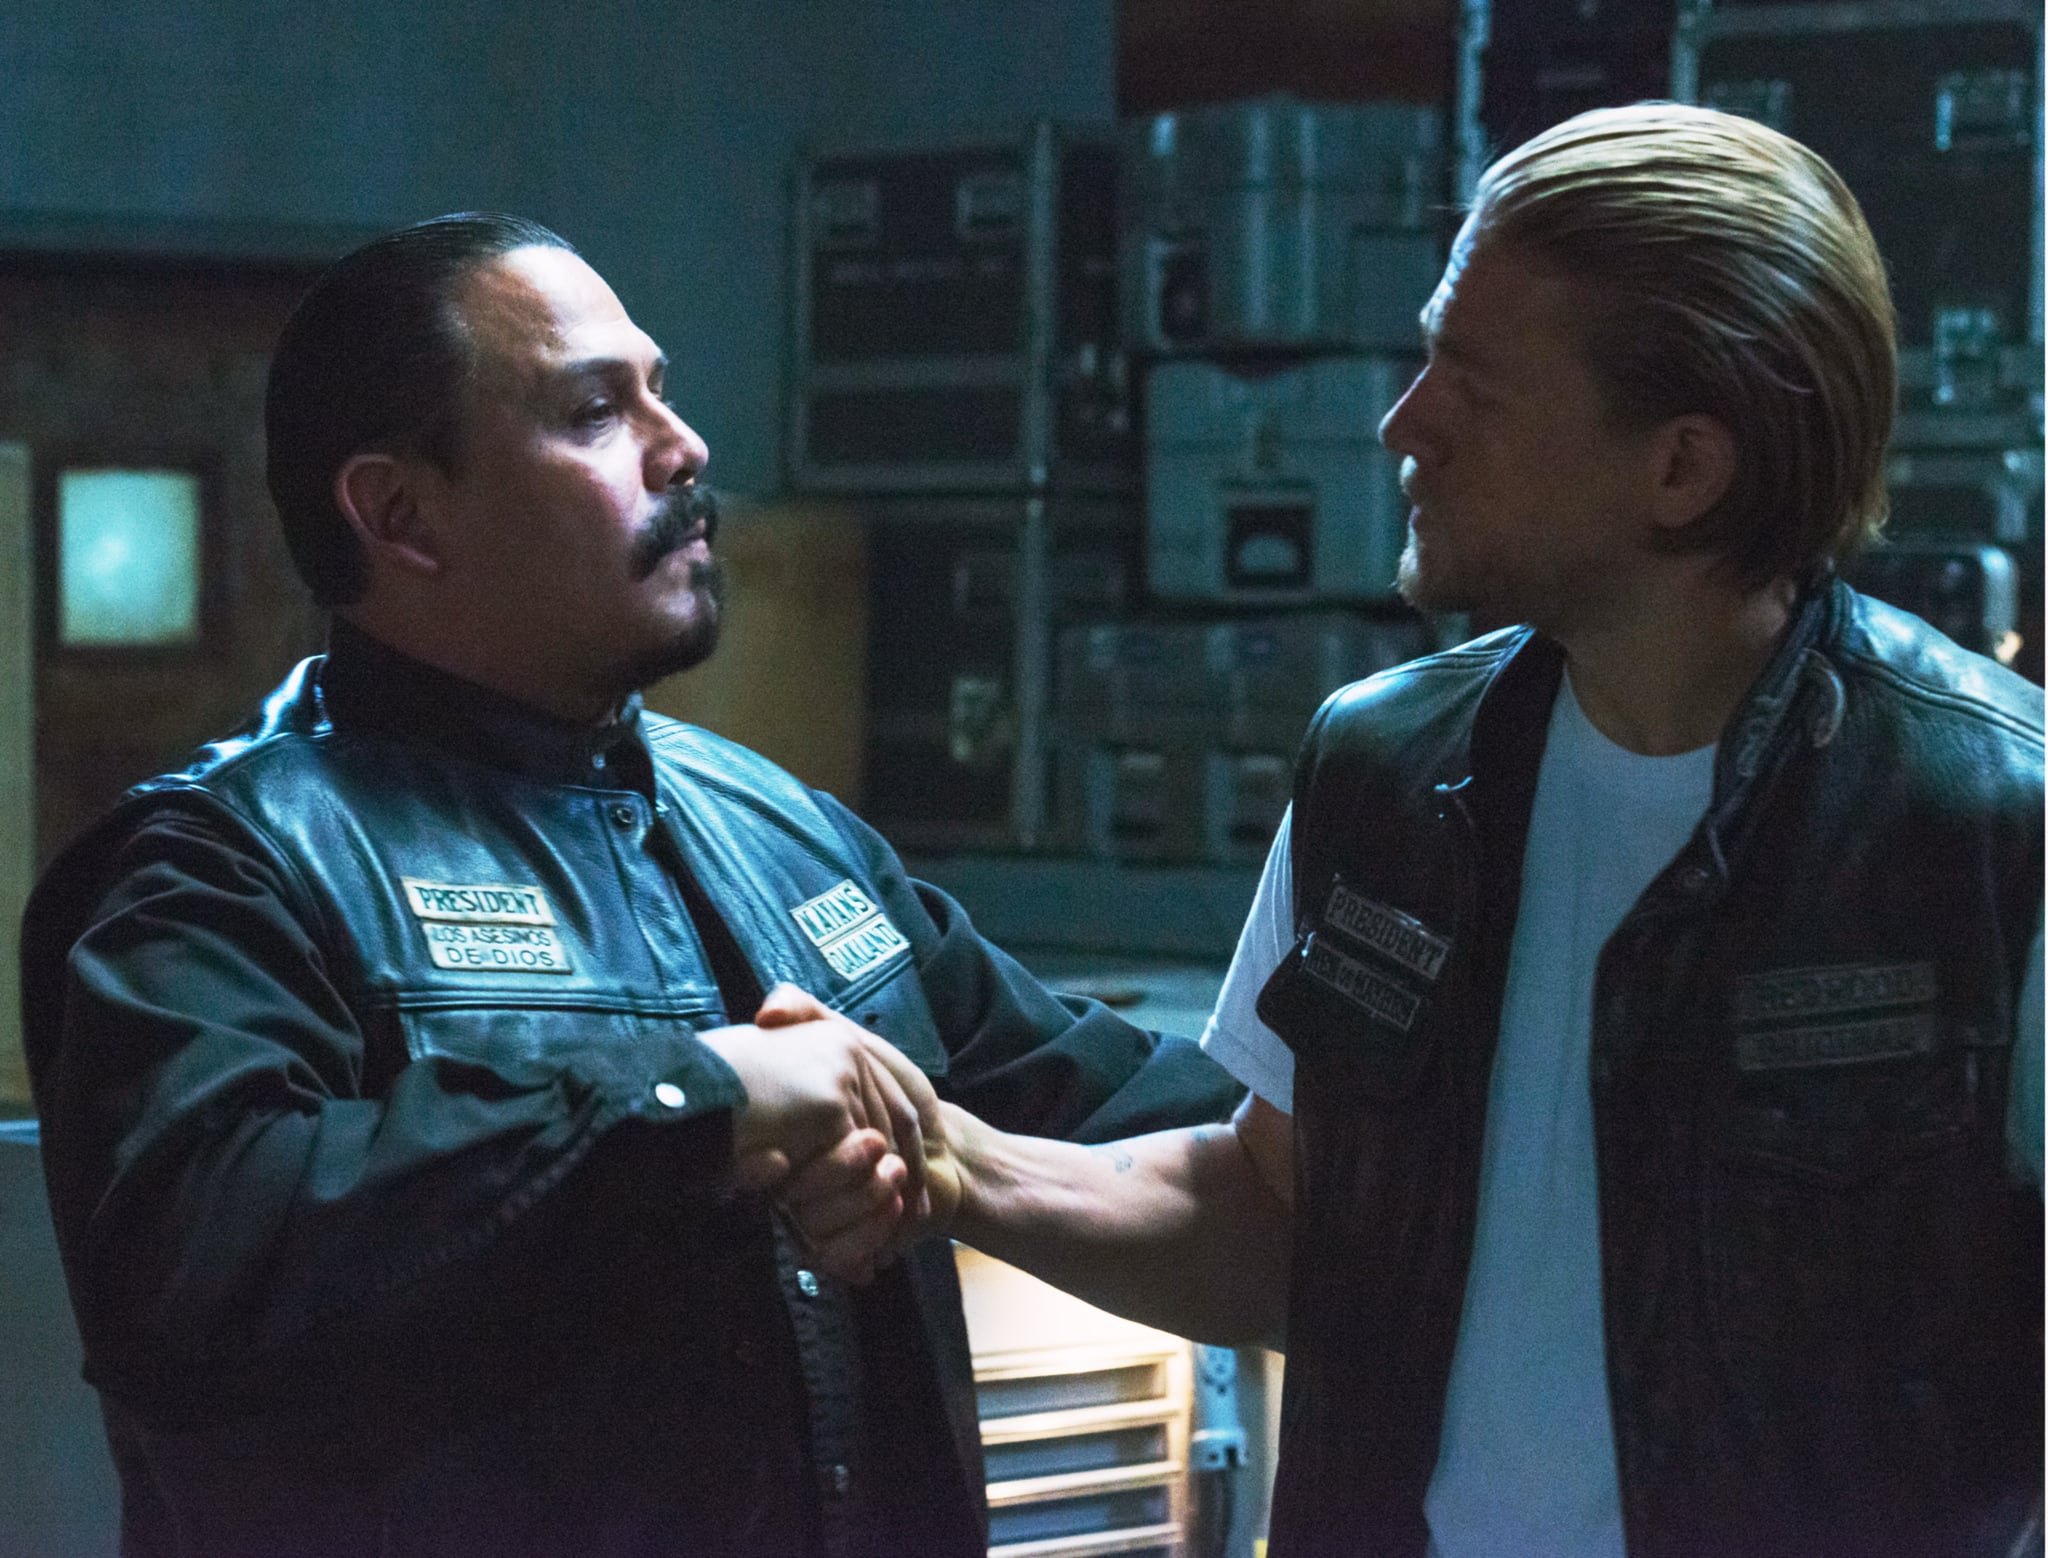 SONS OF ANARCHY, l-r: Emilio Rivera, Charlie Hunnam in 'Suits of Woe' (Season 7, Episode 11, aired November 18, 2014). ph: Prashant Gupta/FX/courtesy Everett Collection